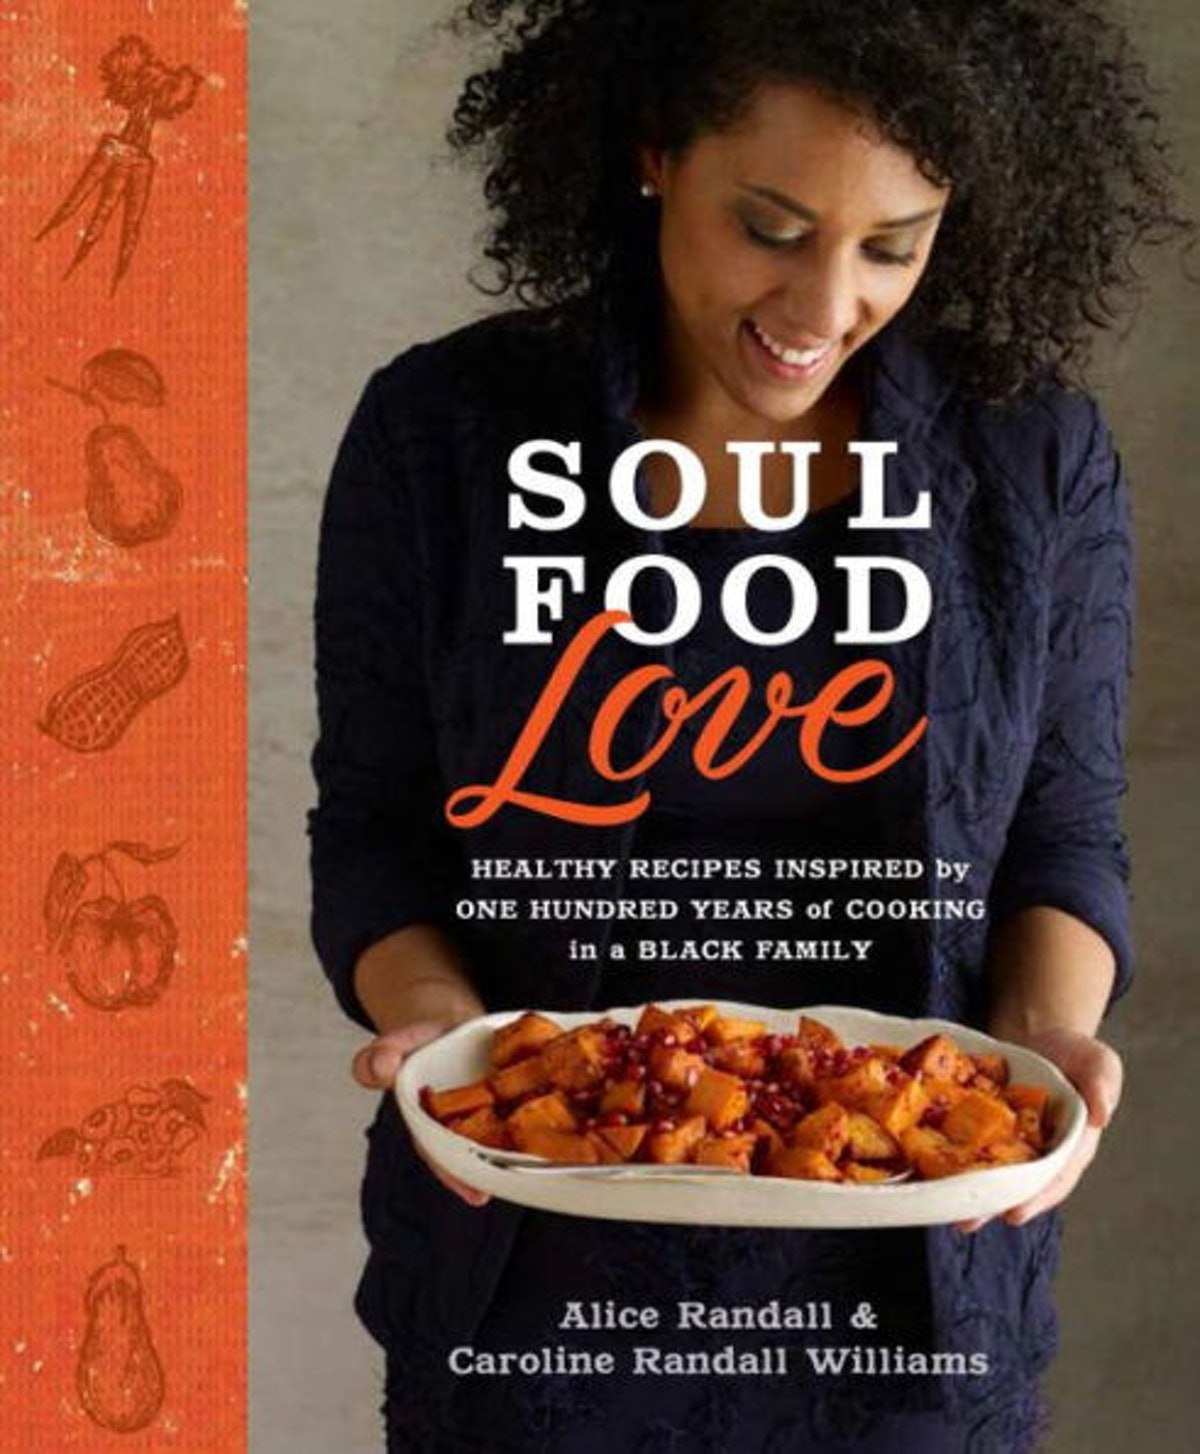 'Soul Food Love: Healthy Recipes Inspired by One Hundred Years of Cooking in a Black Family' by Alice Randall and Caroline Randall Williams